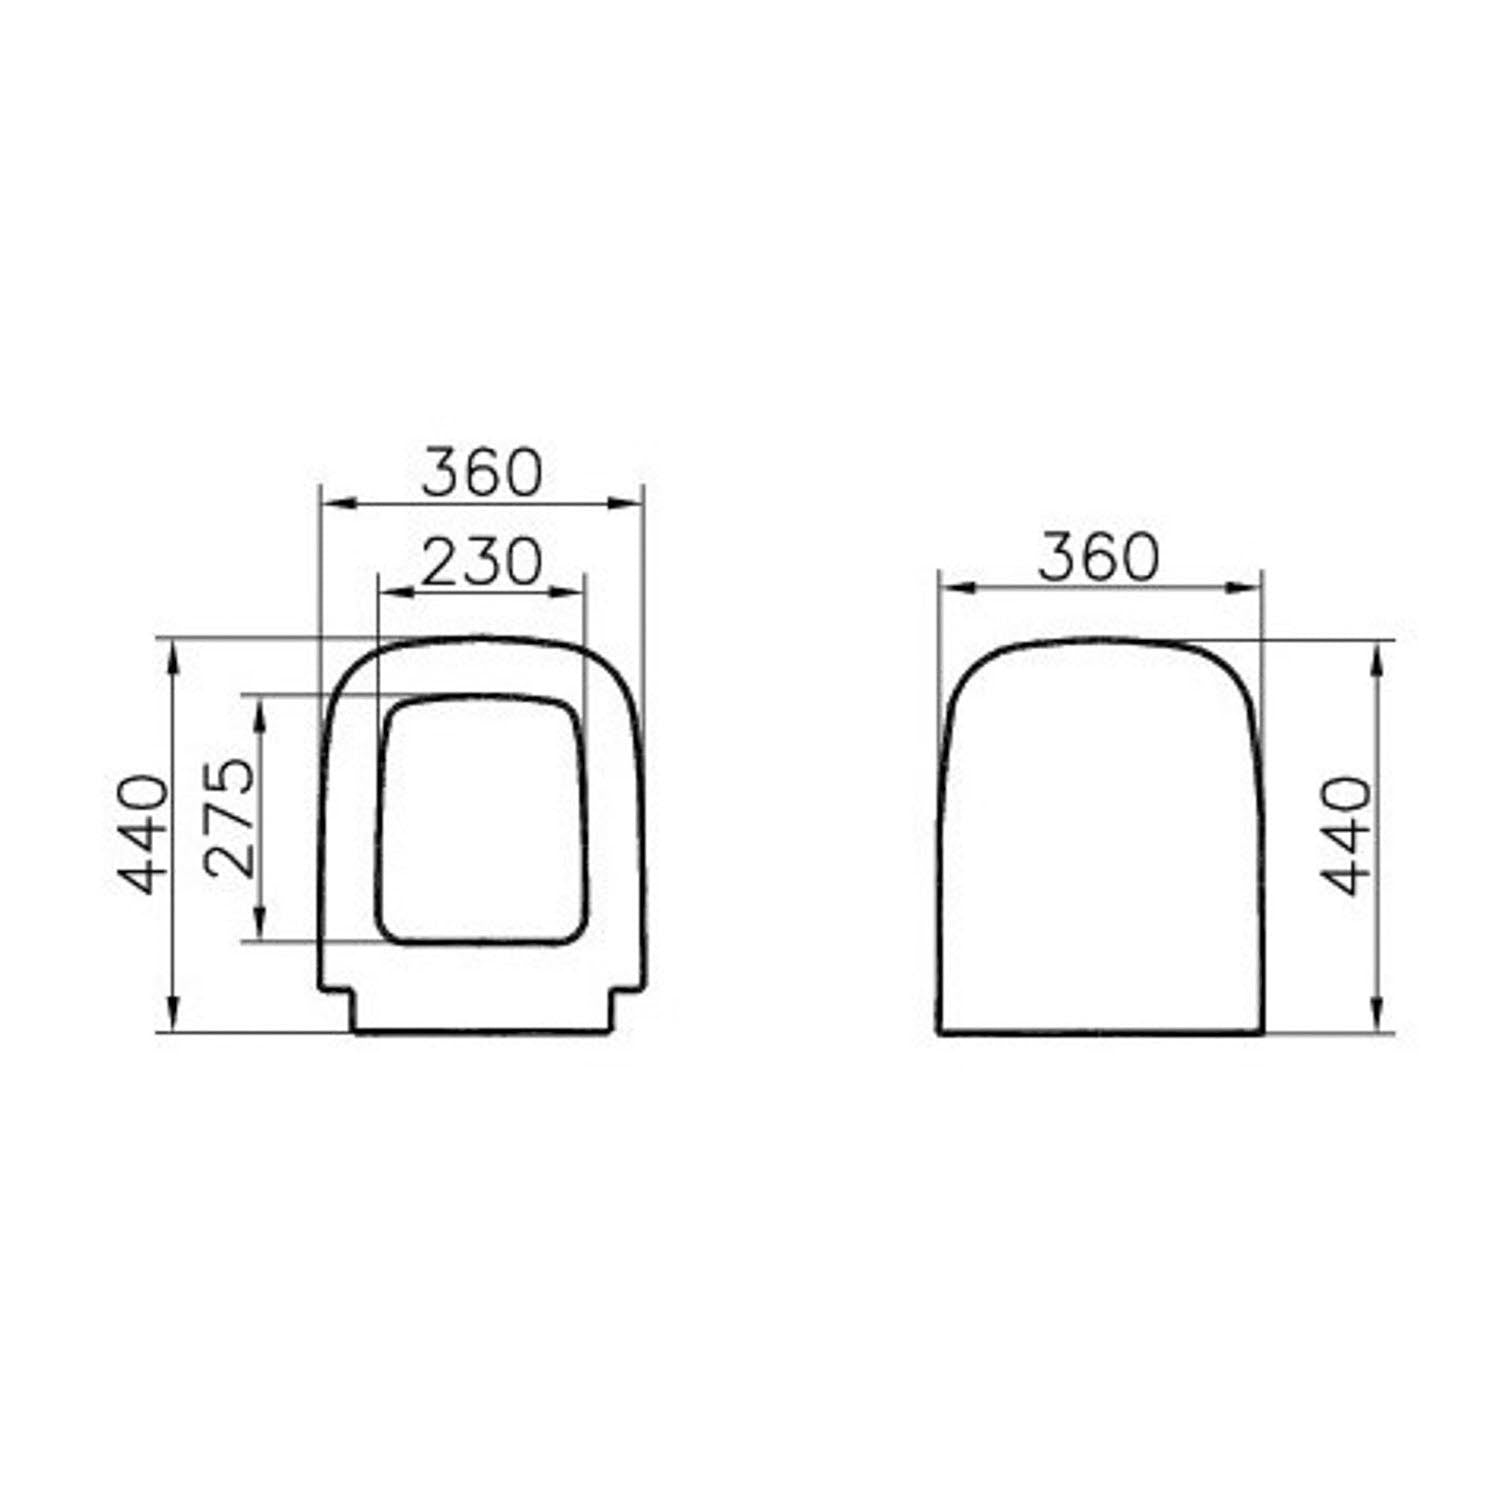 Consilio Close Coupled Toilet Seat and Cover dimensional drawing